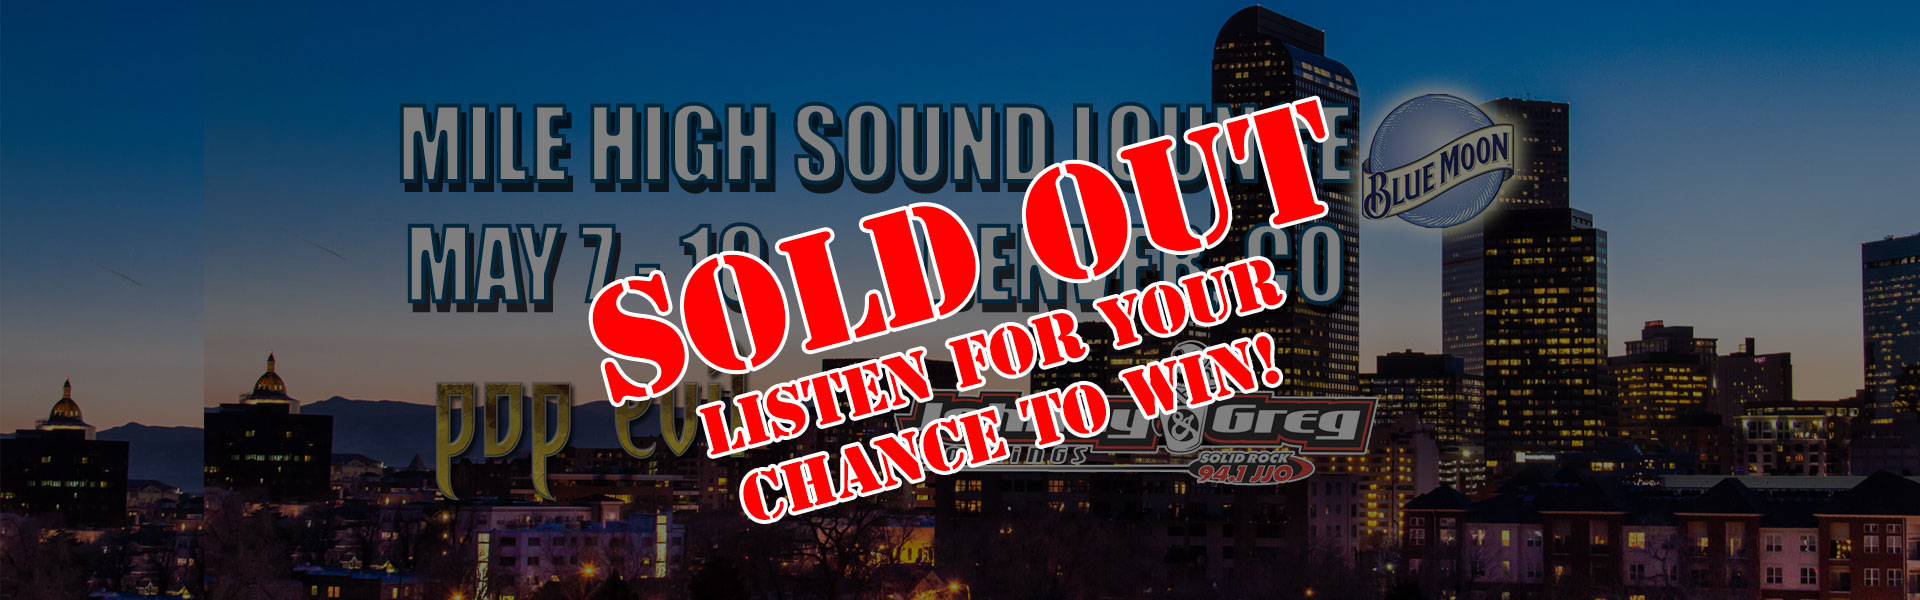 Mile-High-Sound-Lounge-2015-soldout